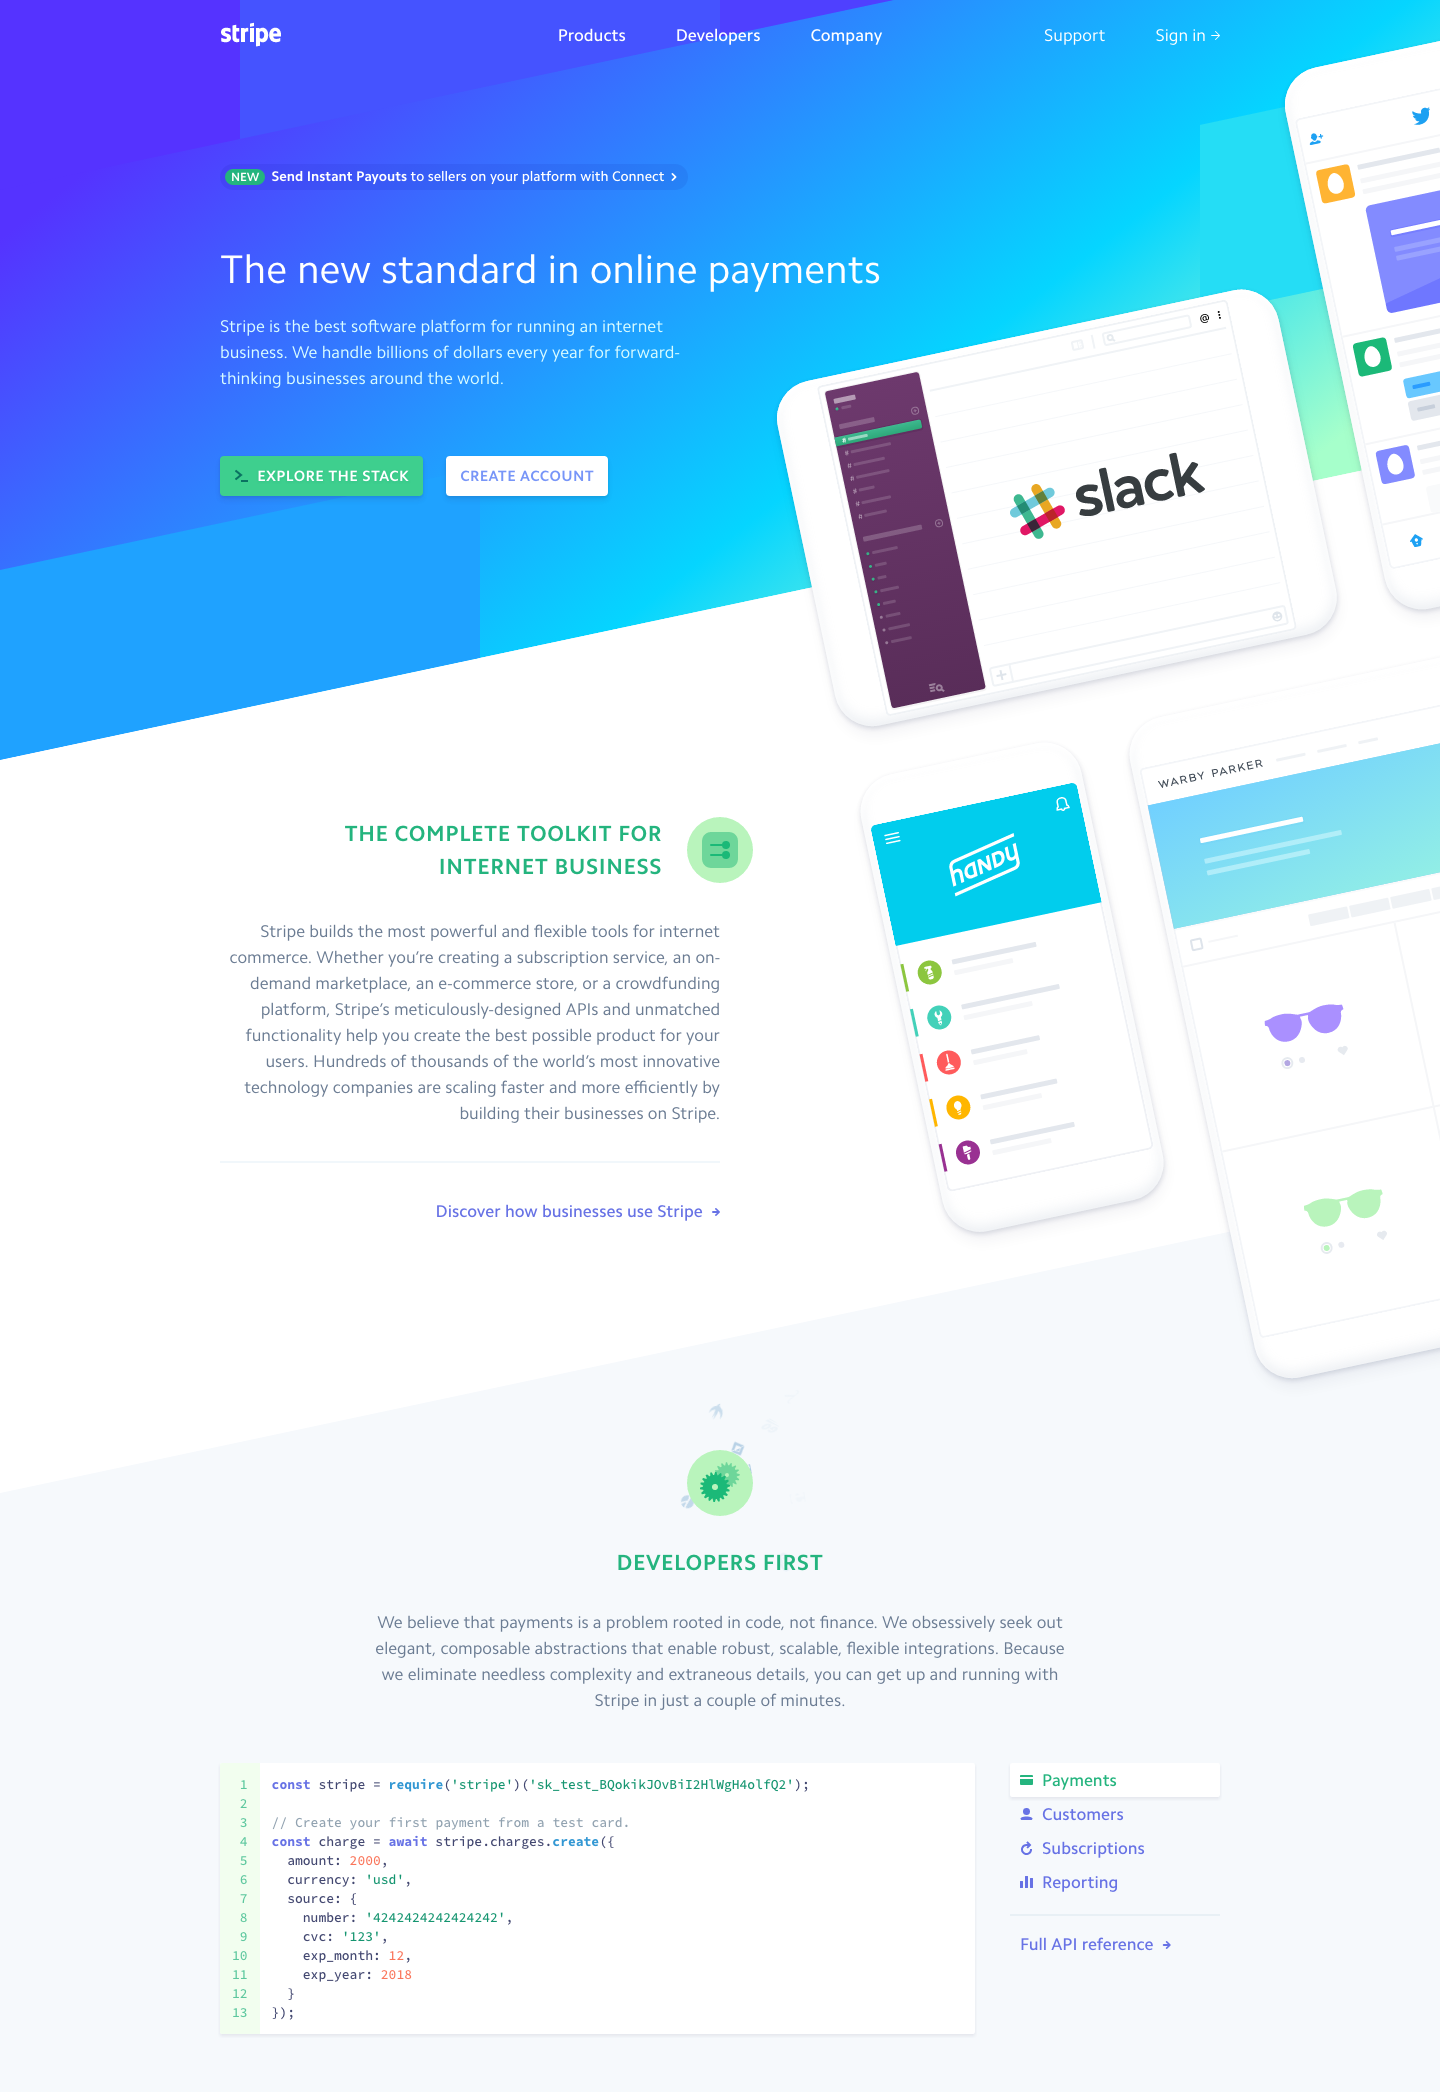 Stripe Landing Page Design - Best Web Designs & UI